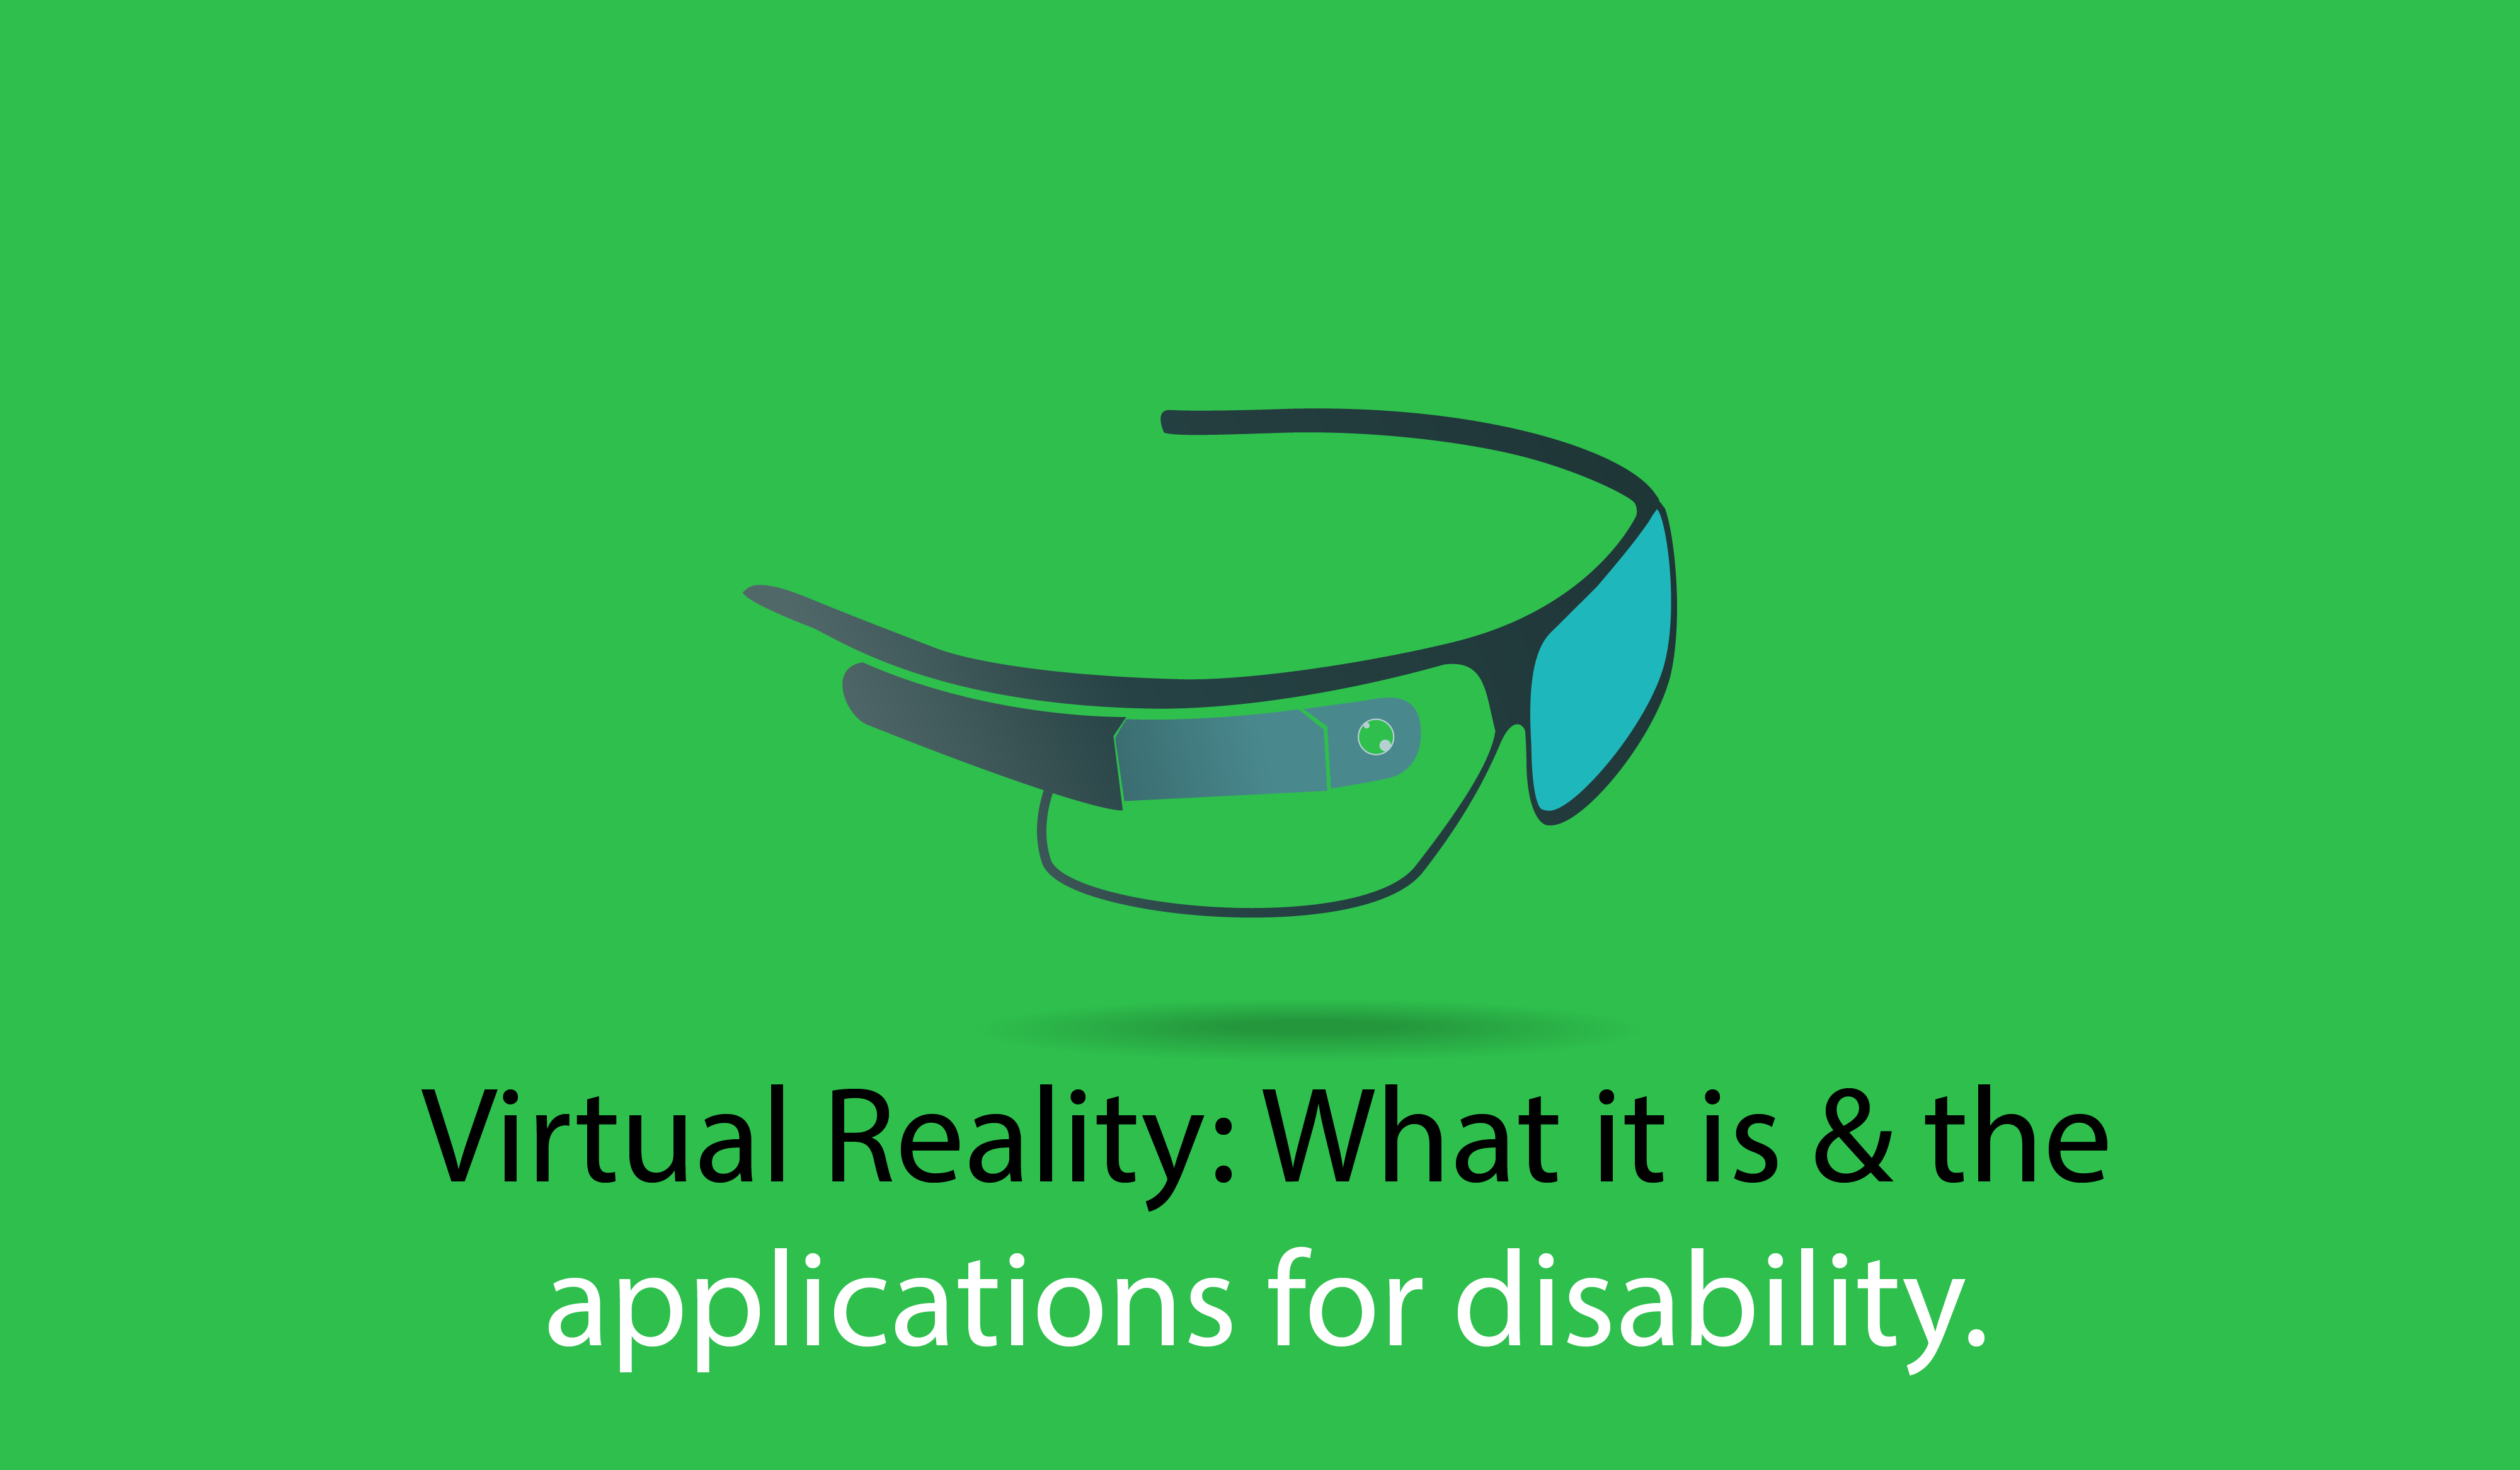 Virtual Reality: What it is and the applications for those with disabilities